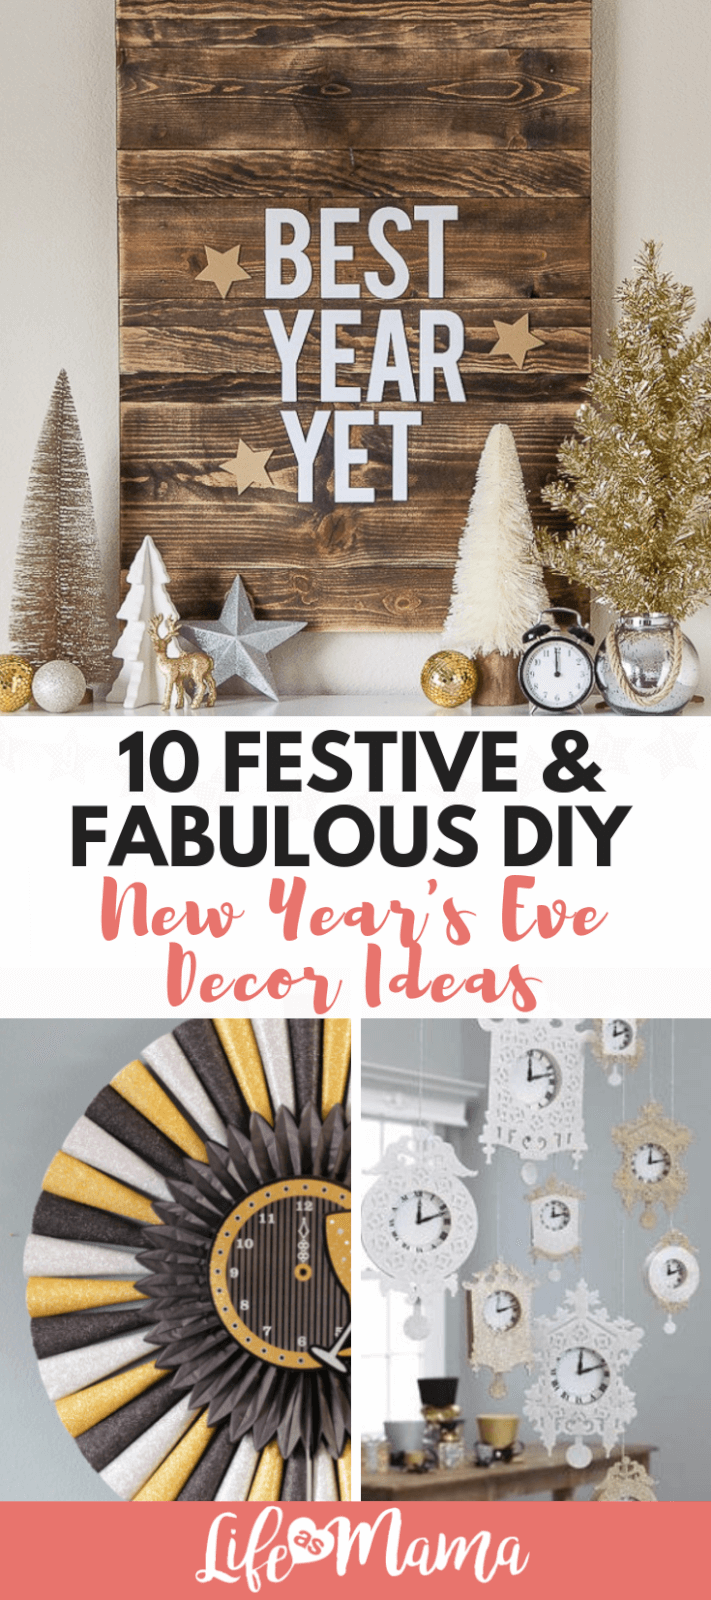 10 Festive & Fabulous DIY New Year's Eve Decor Ideas